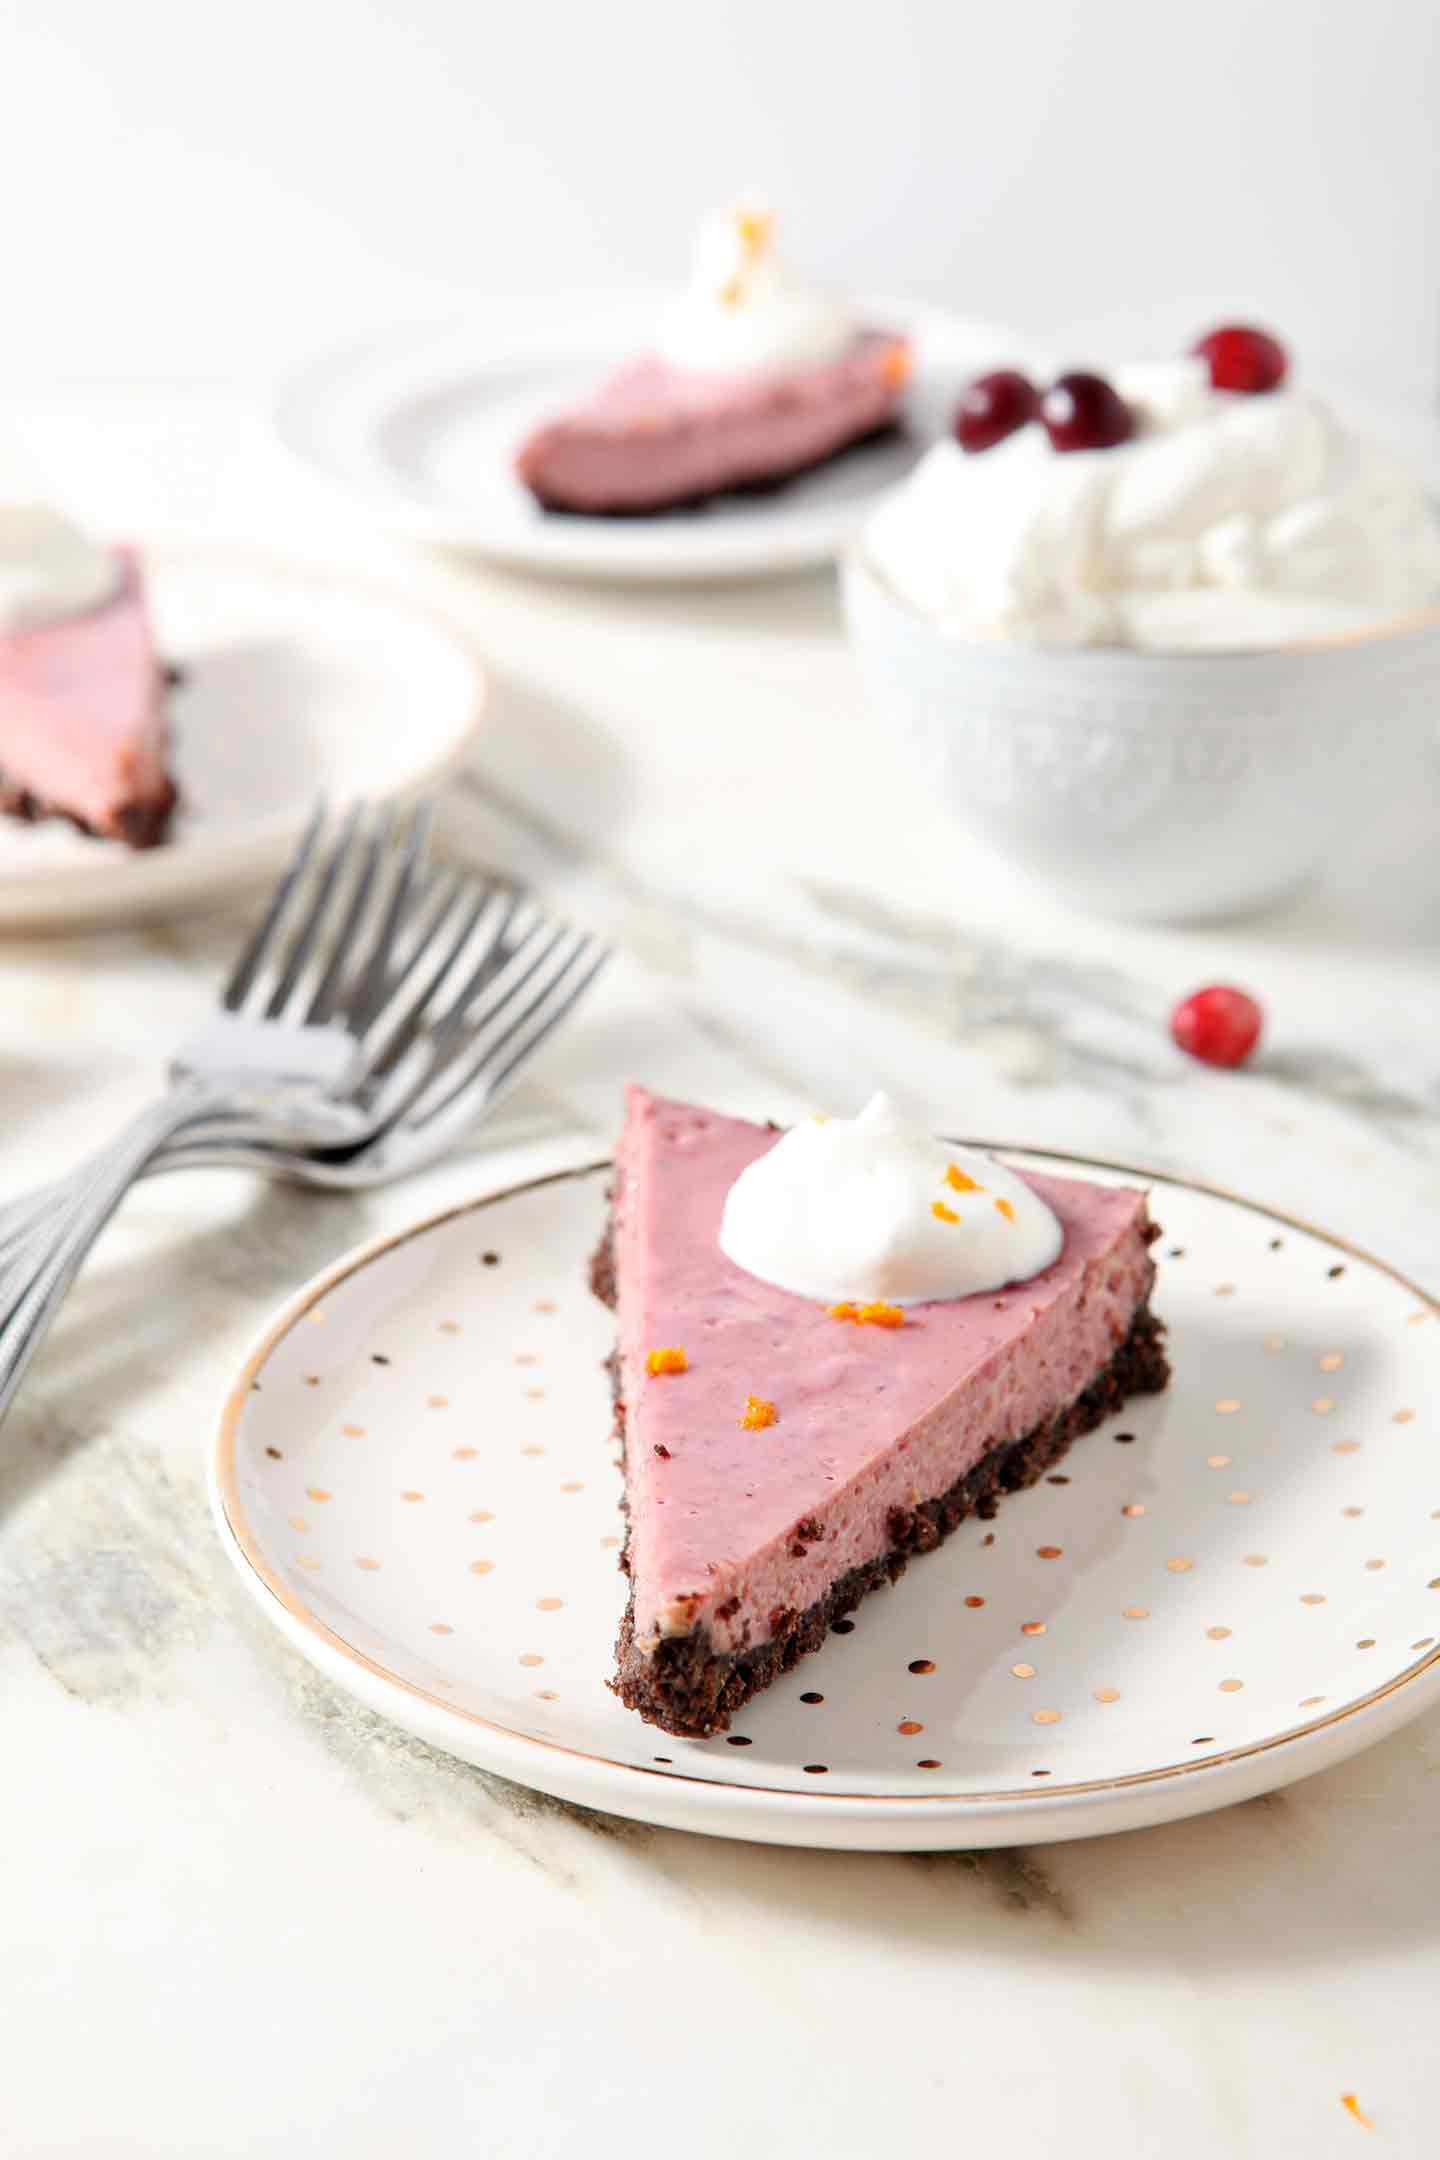 Slices of Creamy Cranberry Tart are served on gold and white plates with fresh whipped cream